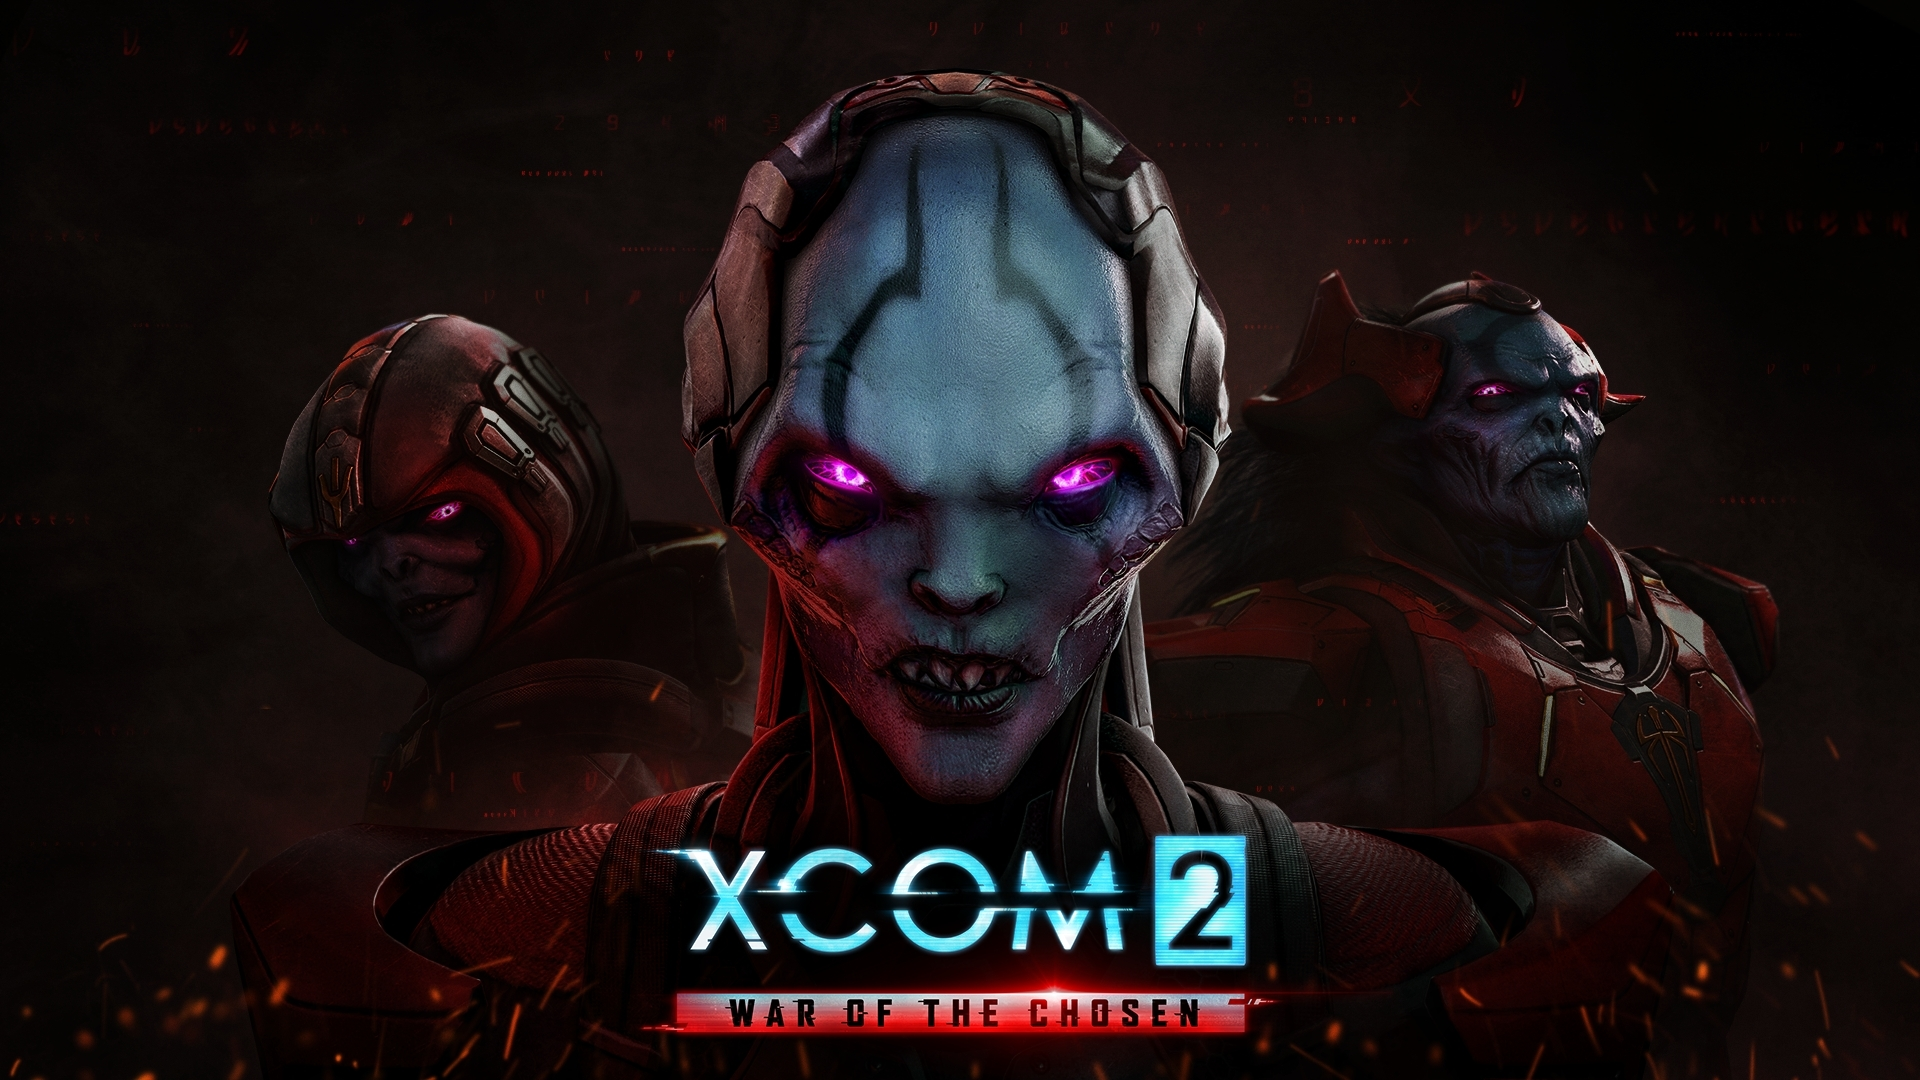 2K and Firaxis Games announced today that XCOM® 2: War of the Chosen, the expansion pack to the 2016 award-winning strategy title, will be available for Windows PC, the PlayStation®4 computer entertainment system and Xbox One on August 29, 2017. (Photo: Business Wire)